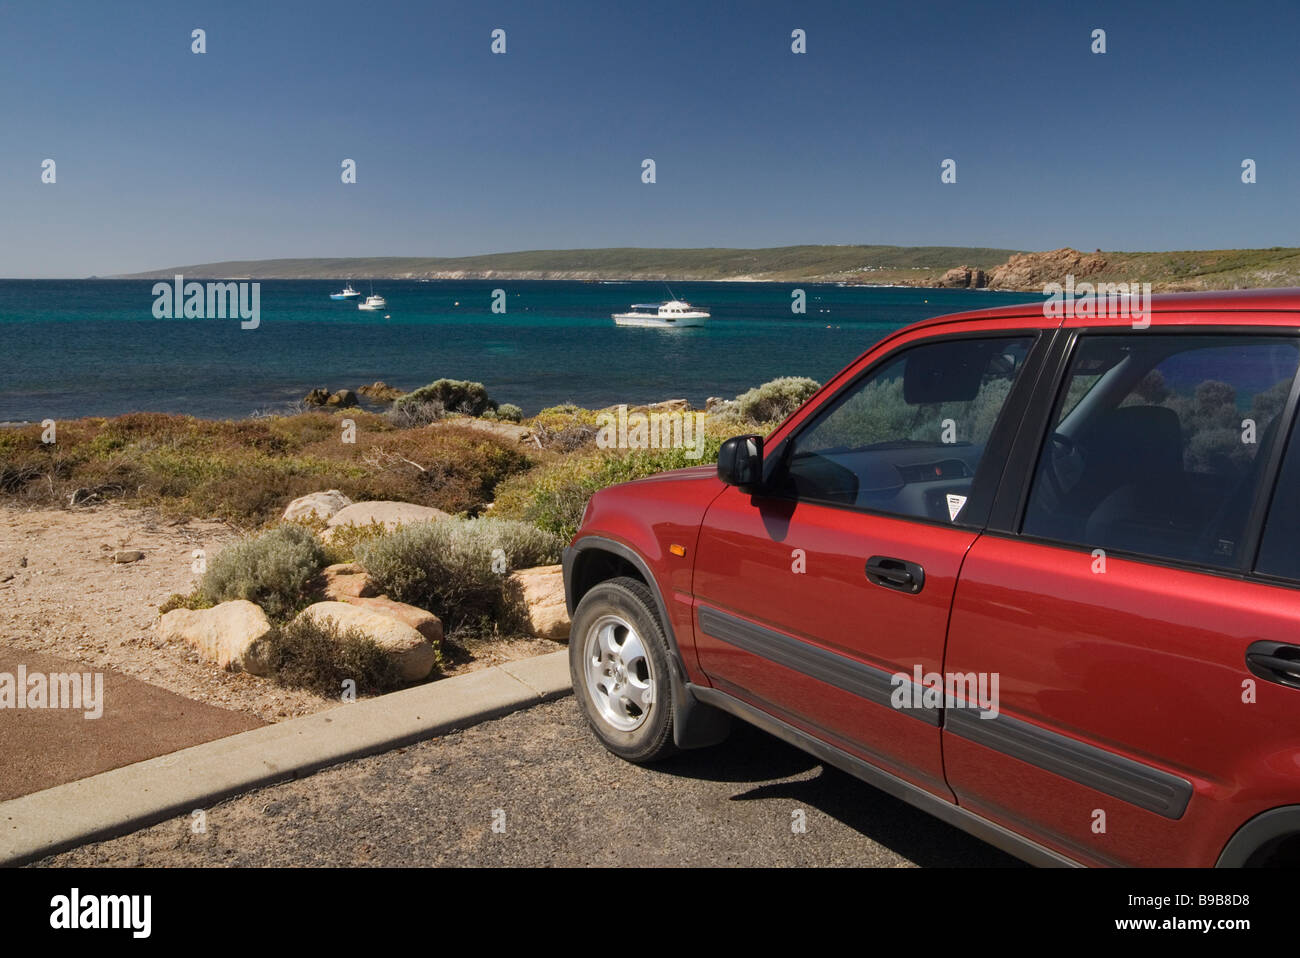 Car parked overlooking the sea in Western Australia's South West - Stock Image